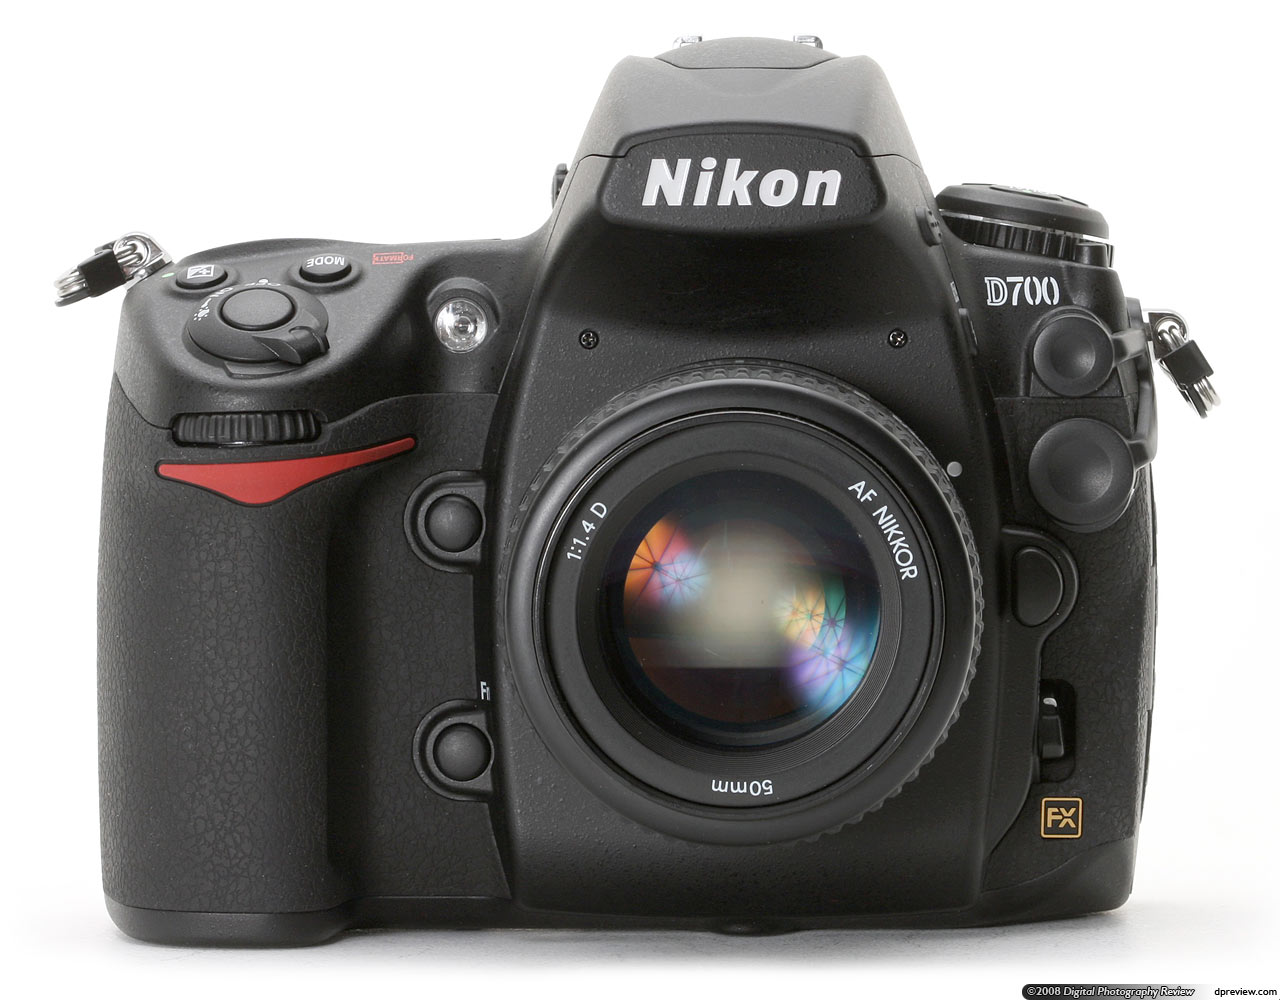 nikon d700 review digital photography review rh dpreview com Nikon D700 Body Nikon D700 Review